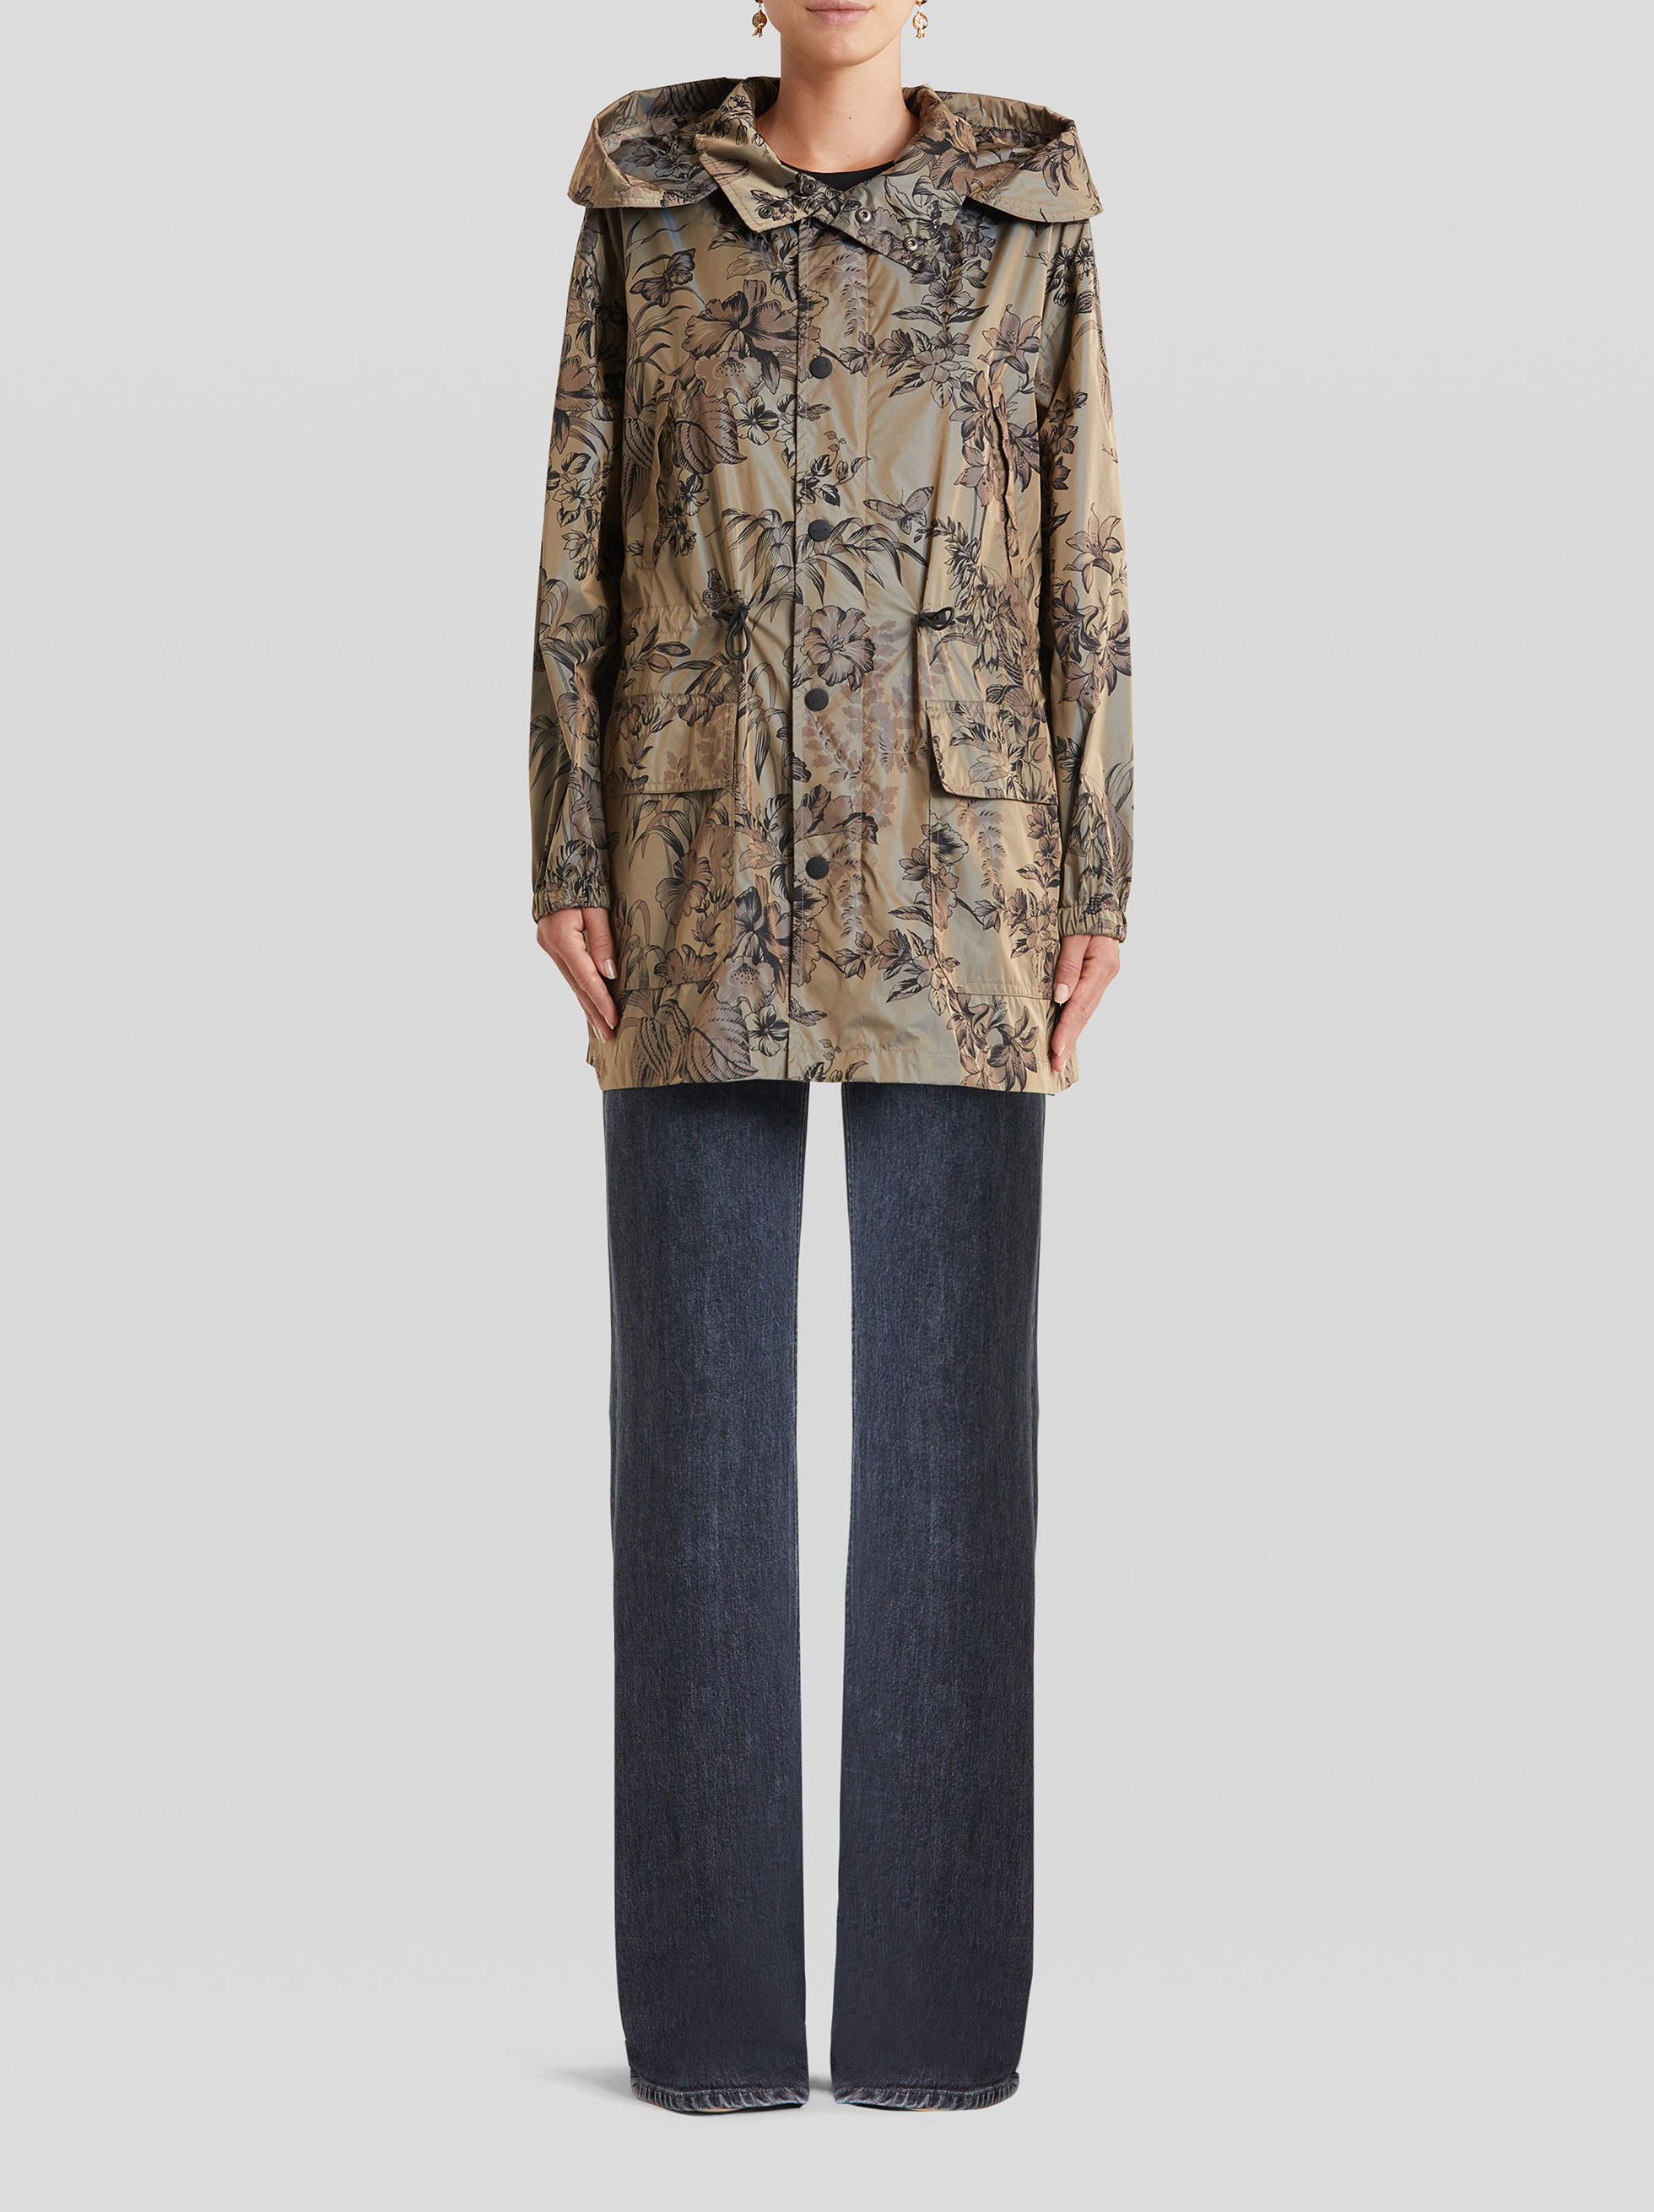 JACKET WITH LEAFY FLORAL DESIGNS